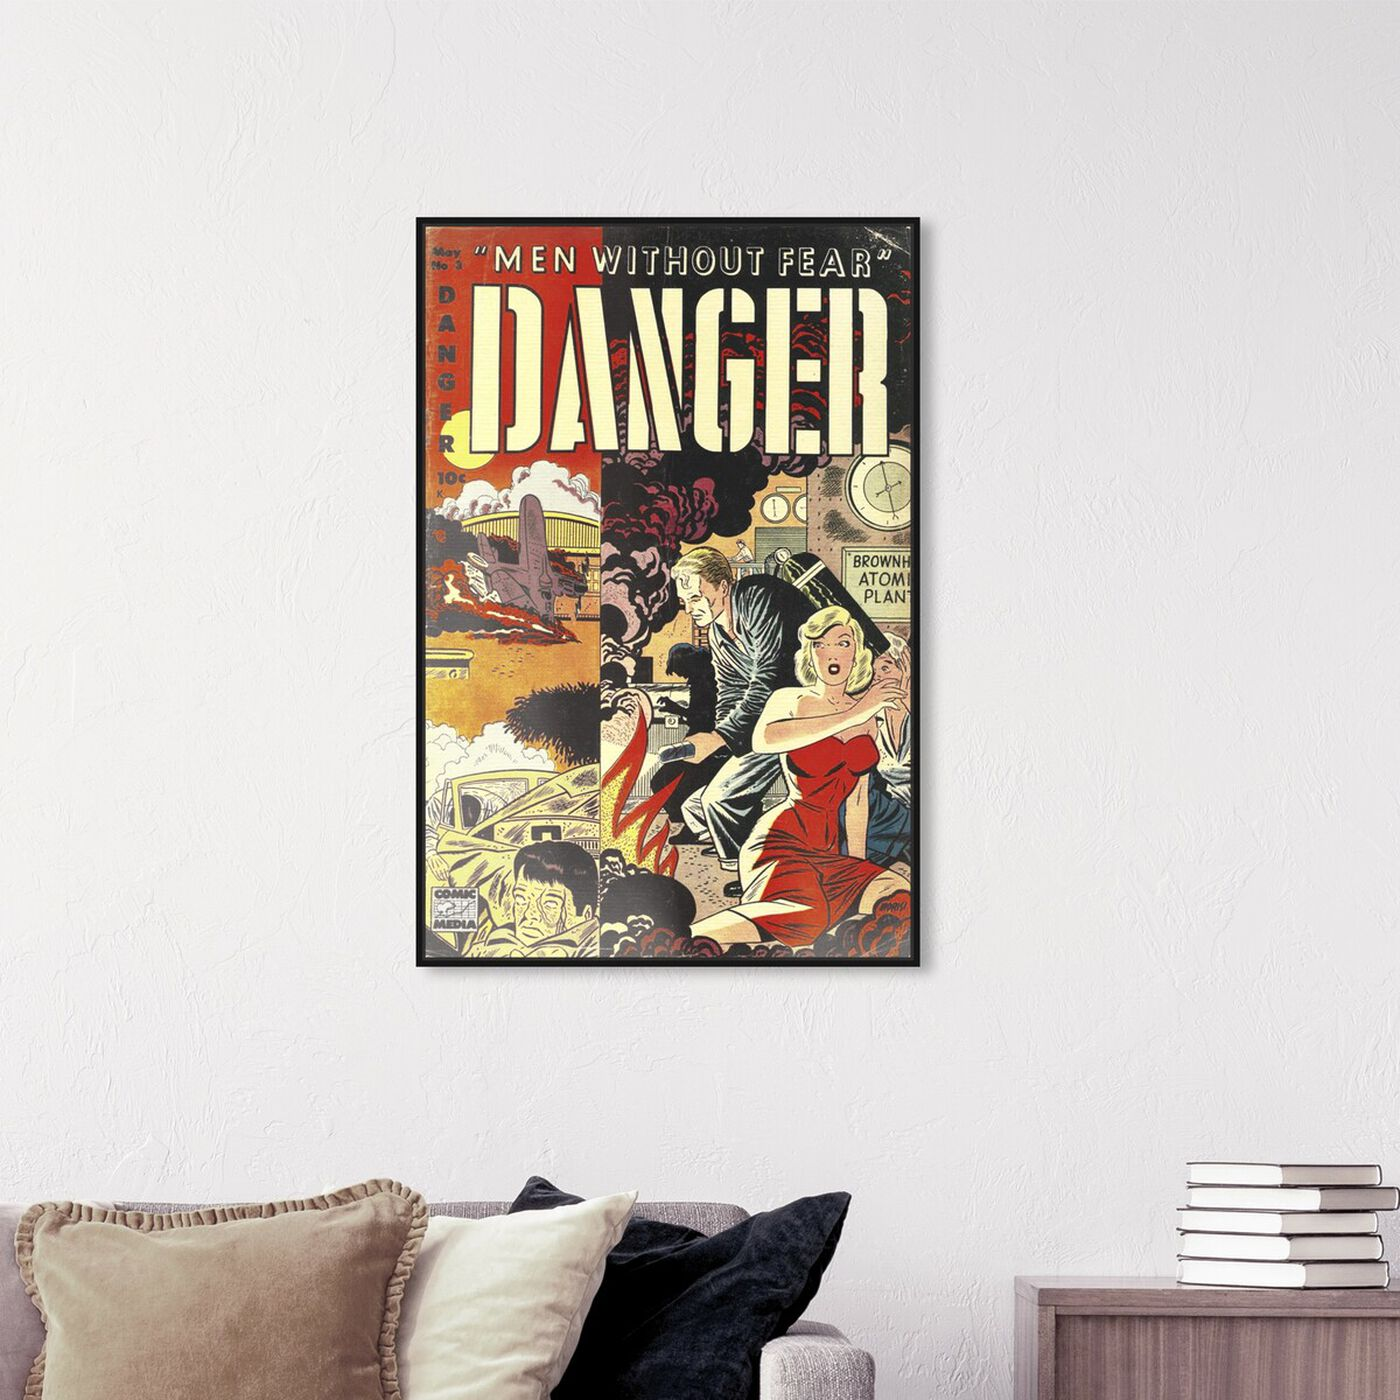 Hanging view of Men Without Fear featuring advertising and comics art.